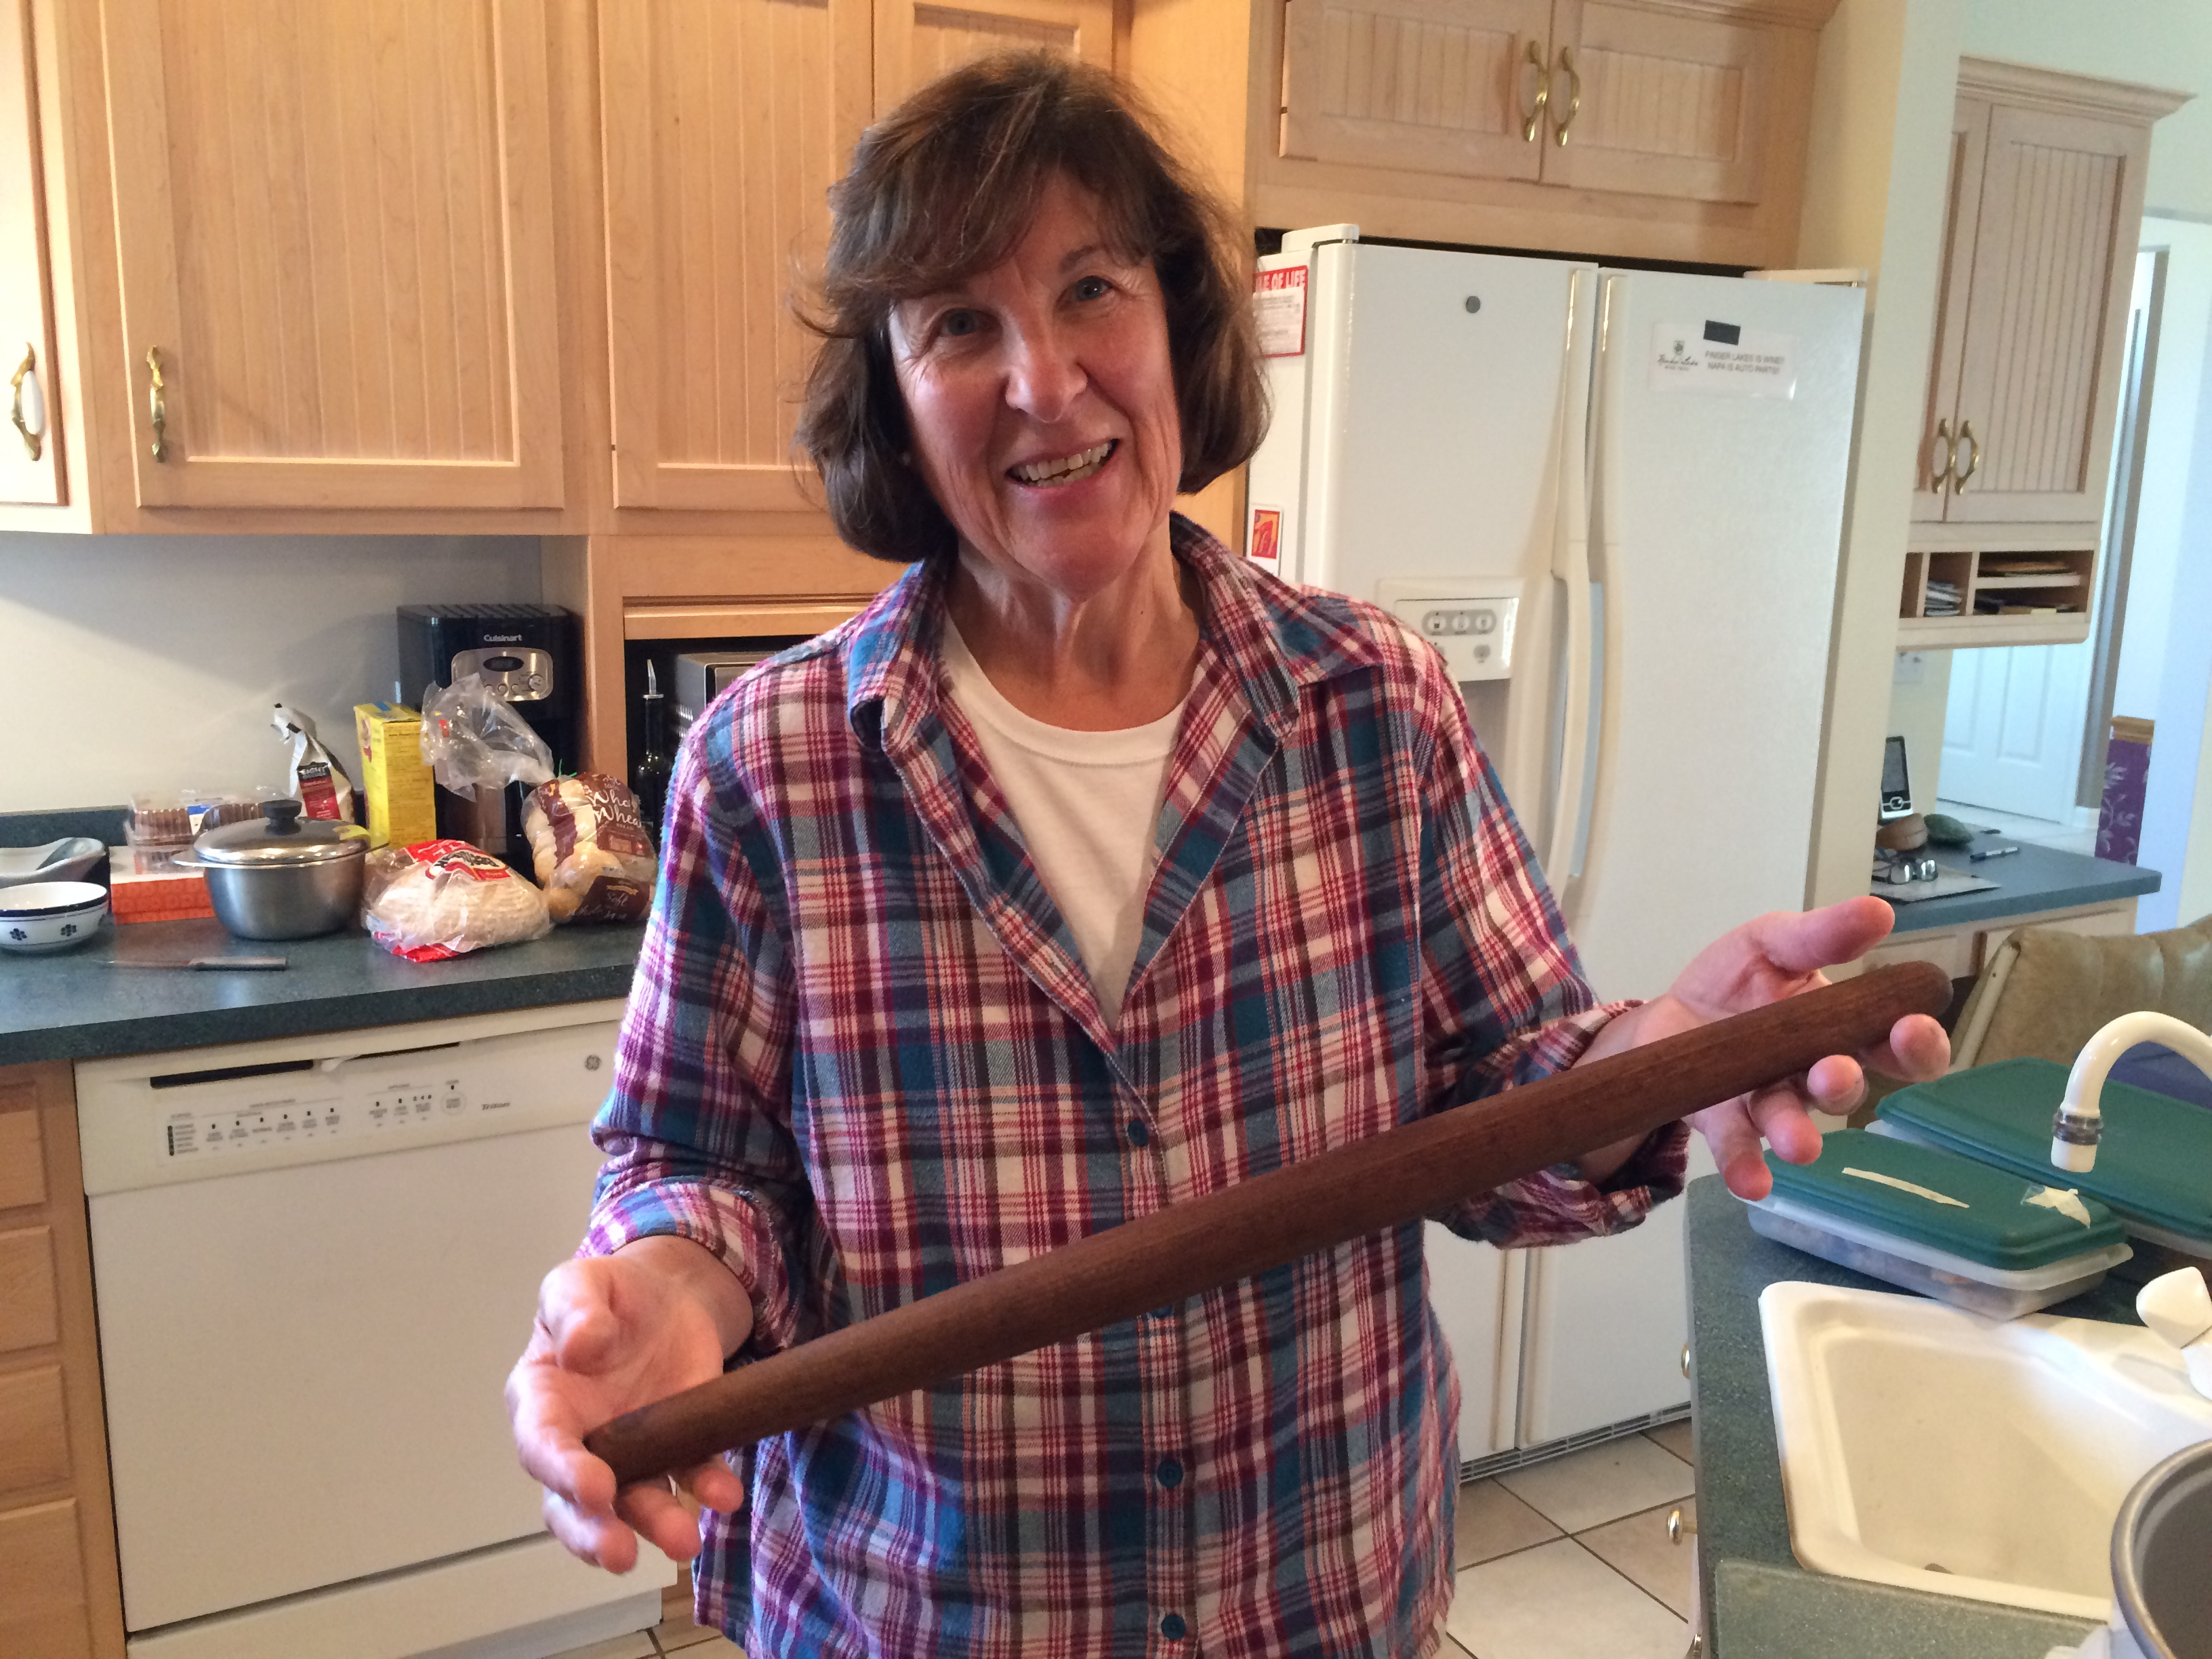 Caryn with her grandmother's rolling pin.  (Did she need that to keep her brood in order or just to roll pie crust??)